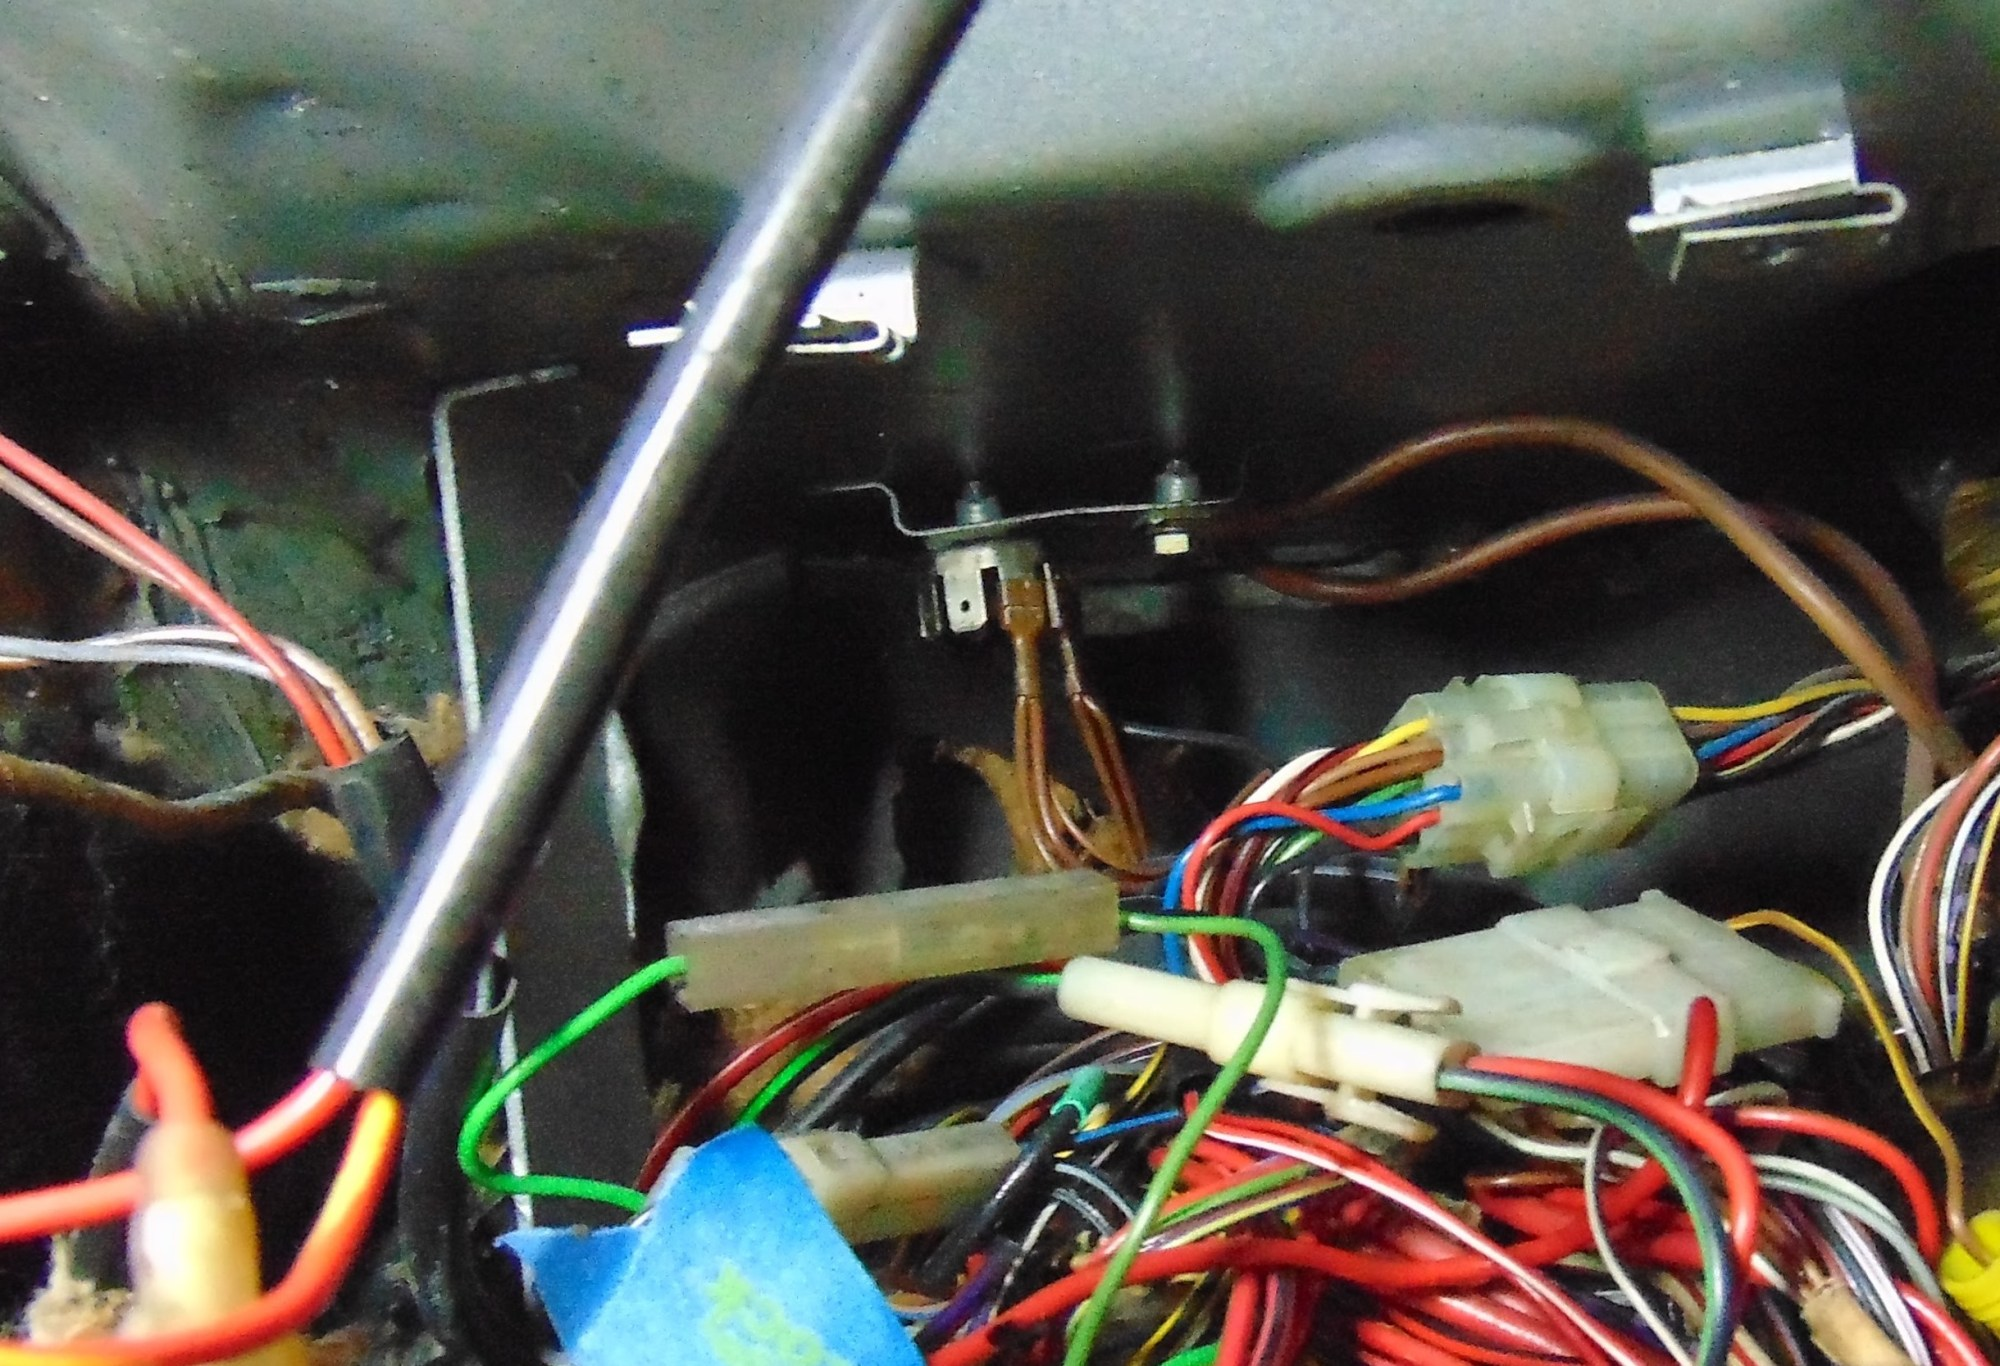 hight resolution of before reinstalling the dash i attempted to identify and perform a functional check on all the required circuits in particular those terminating at the